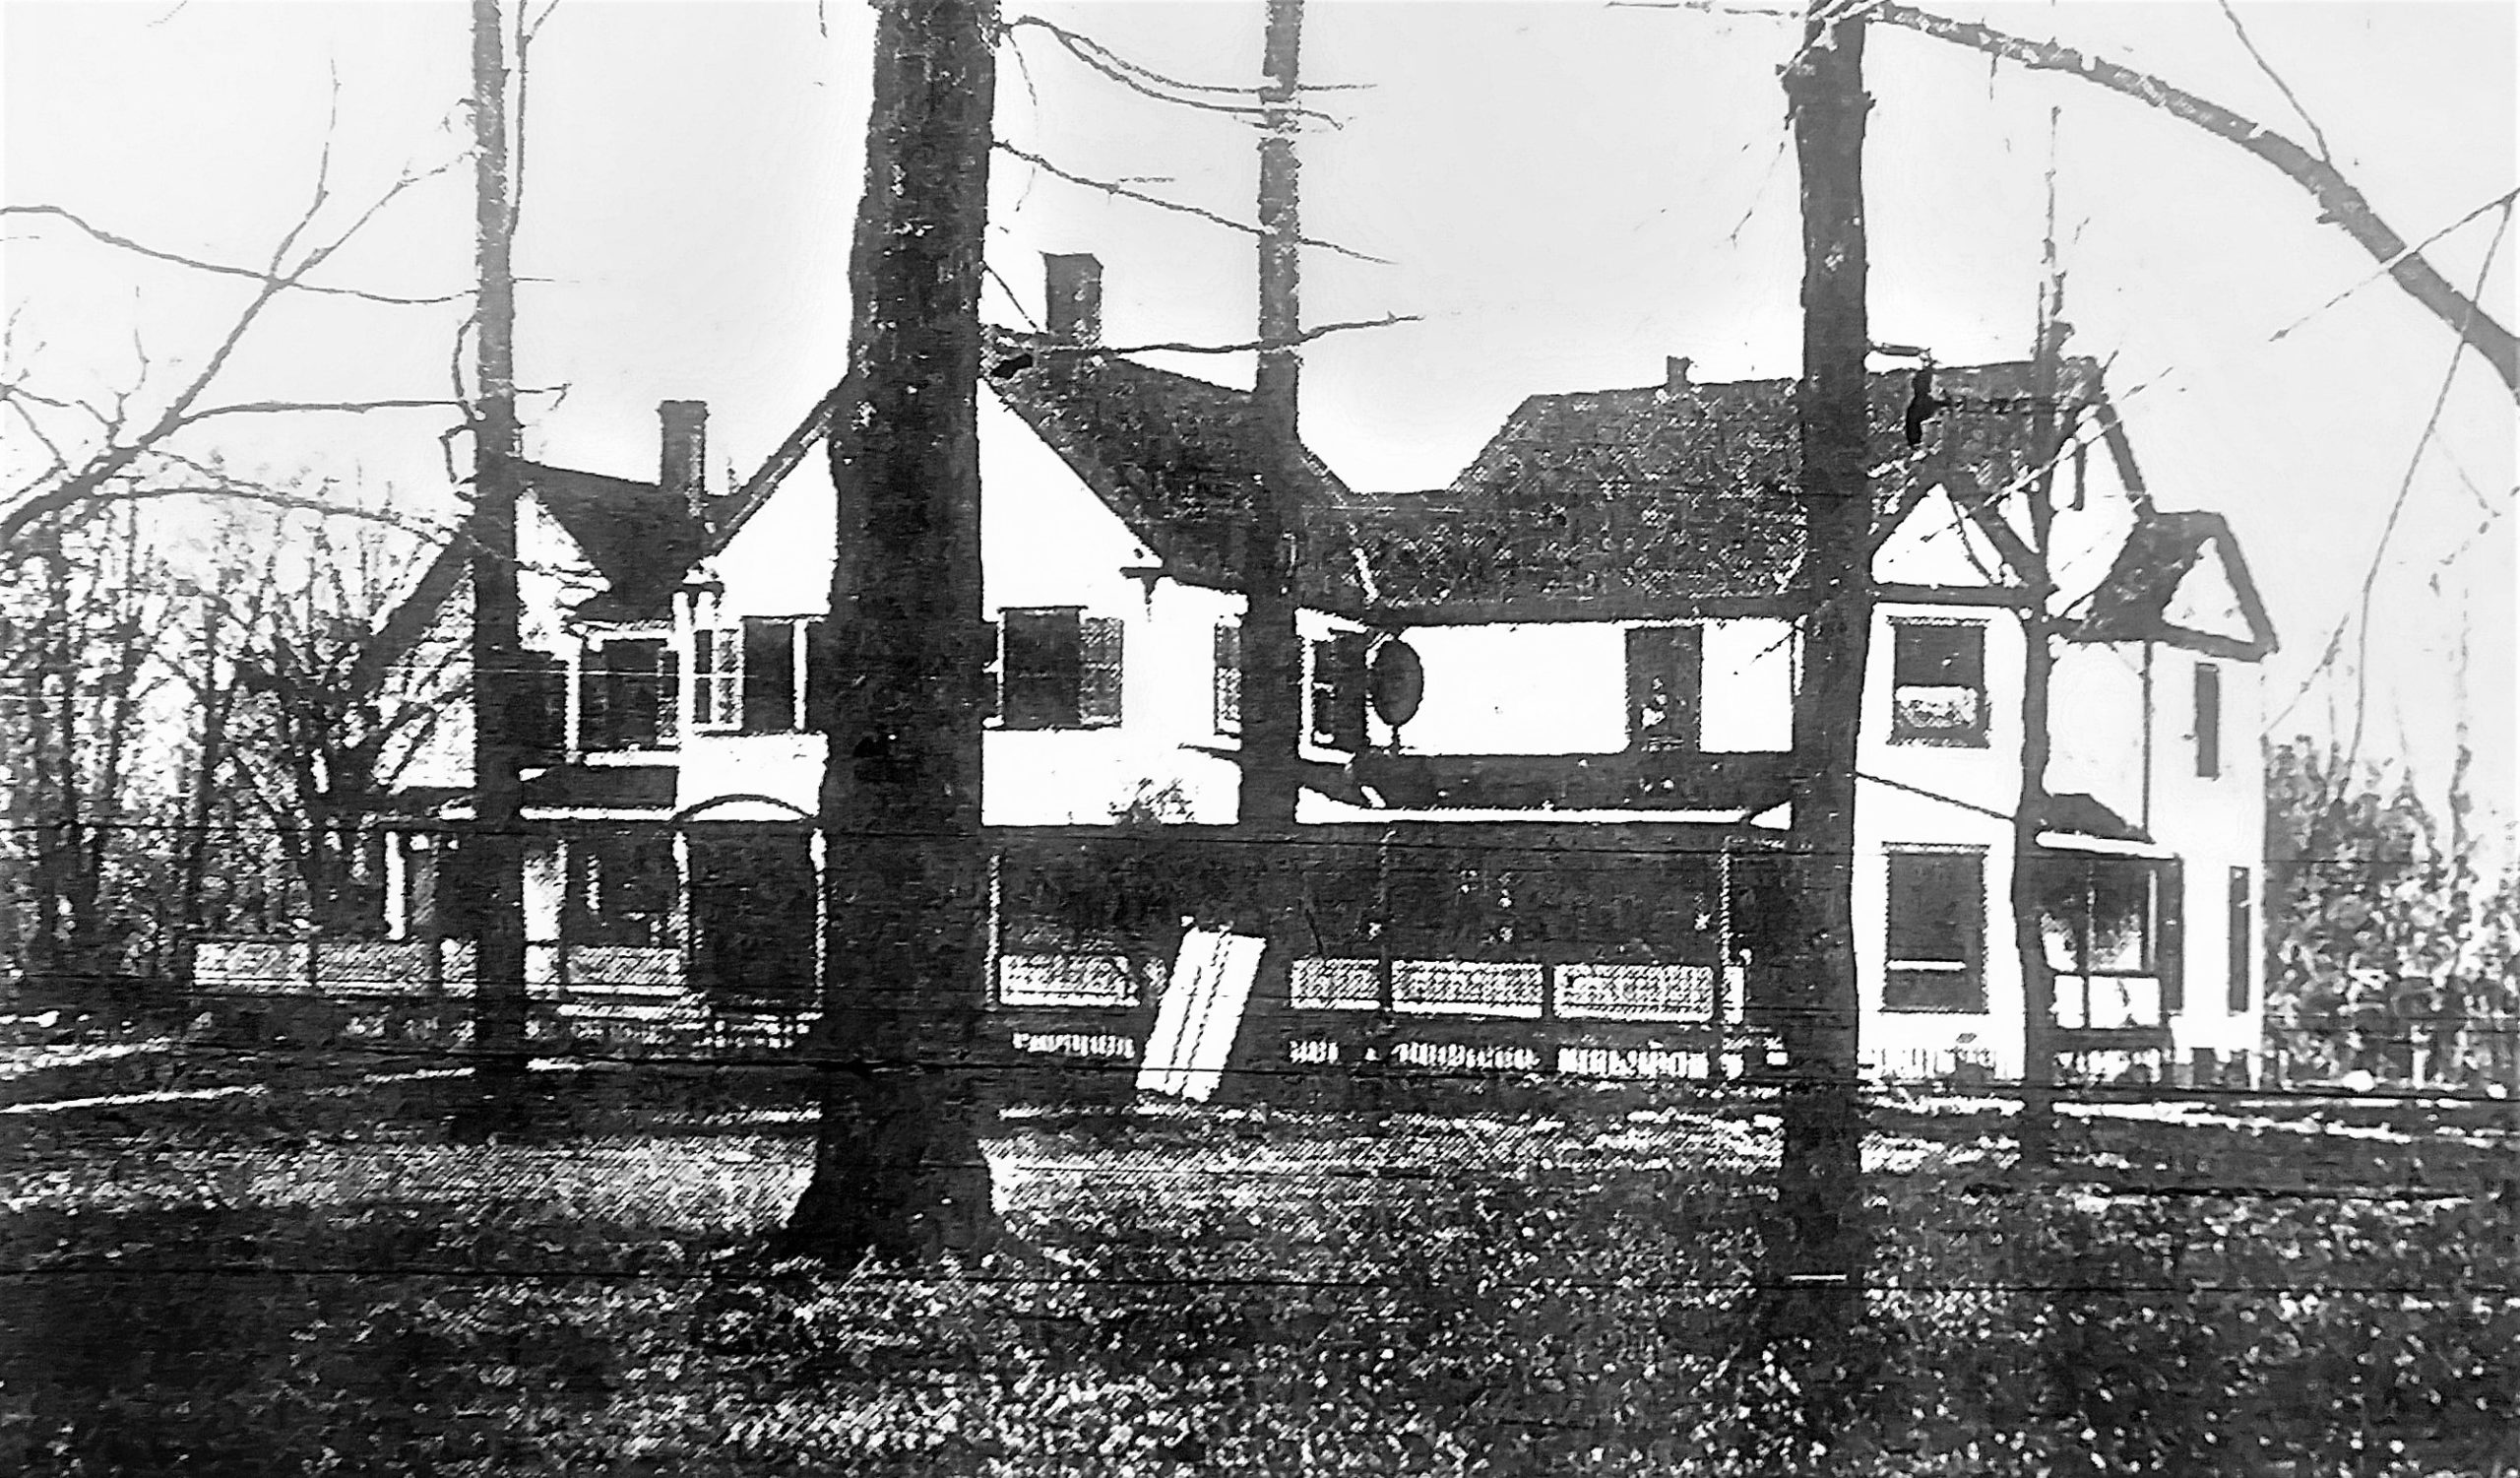 Second Cleveland Golf Club Clubhouse on Coit Road 1900.